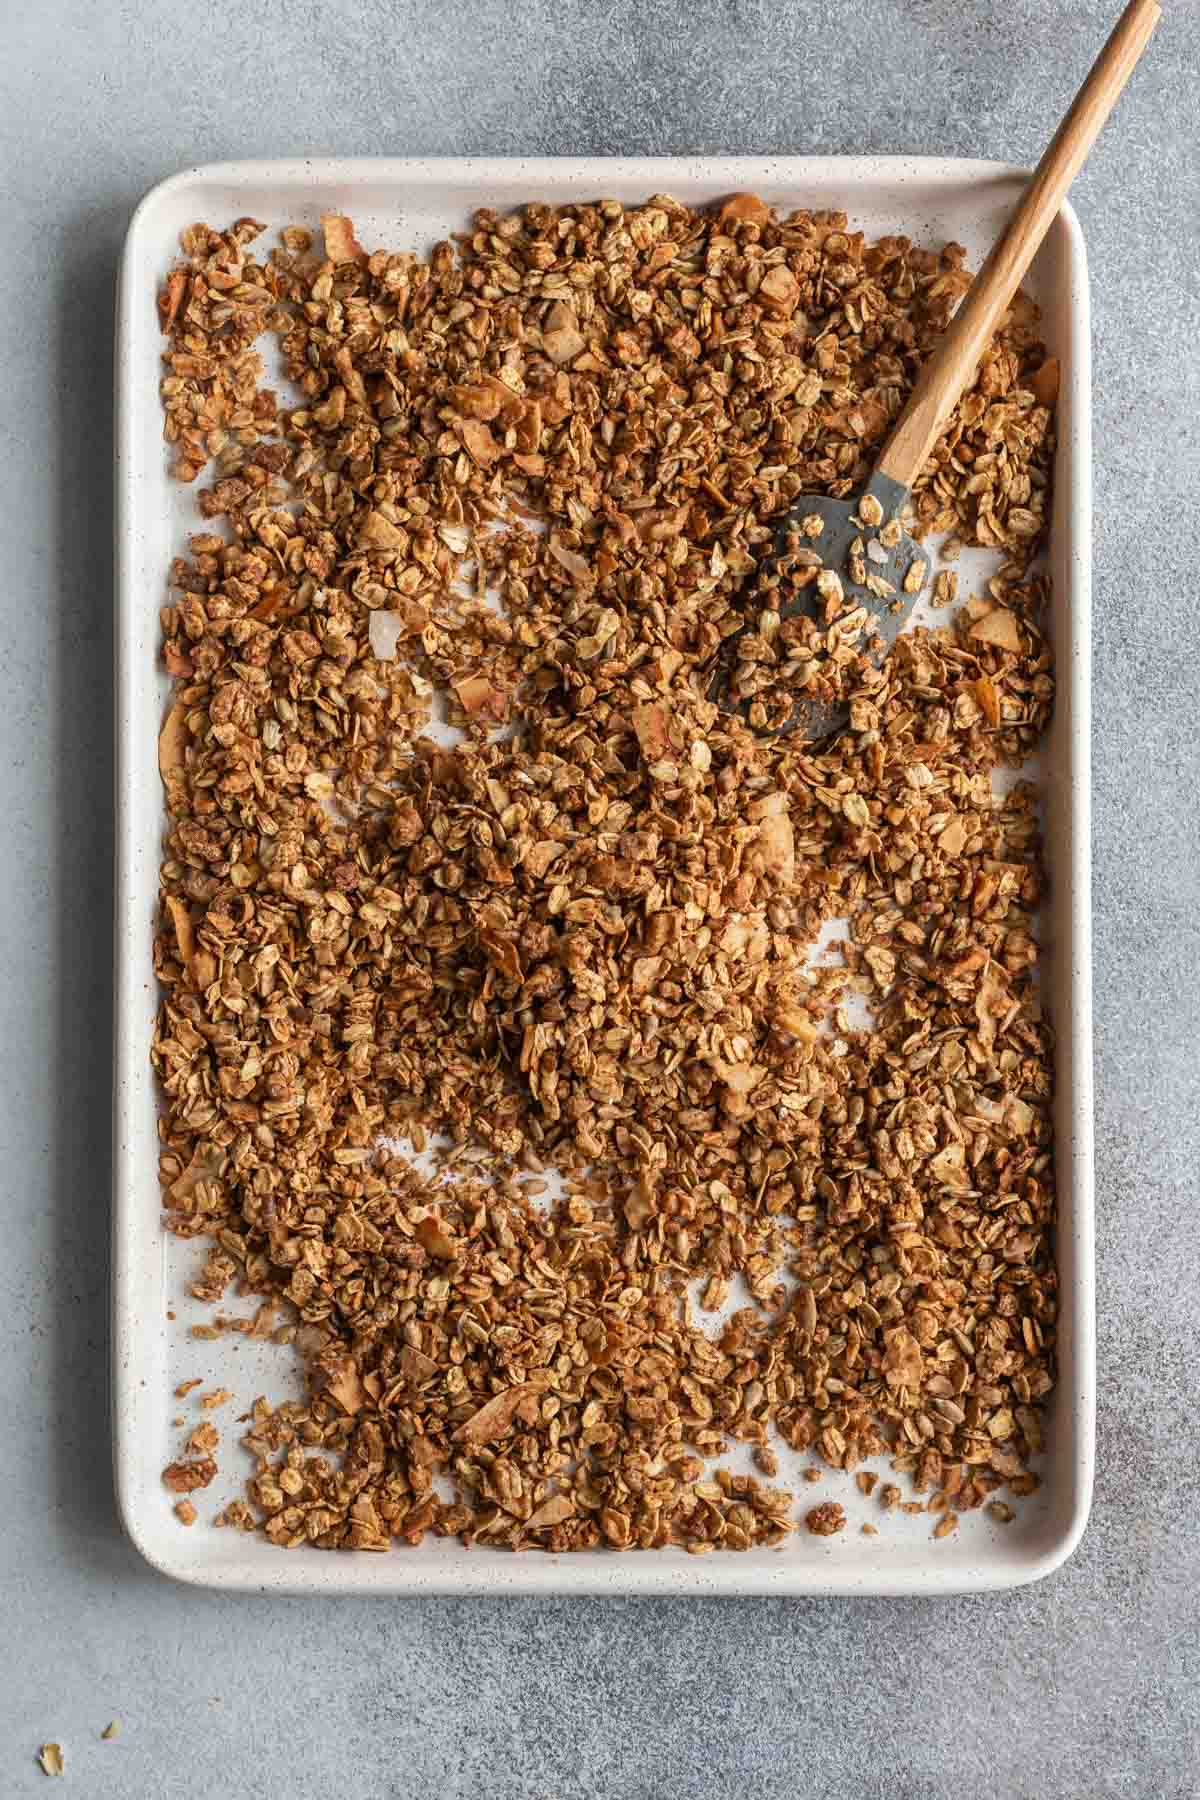 Maple granola baked up golden brown on a baking sheet.